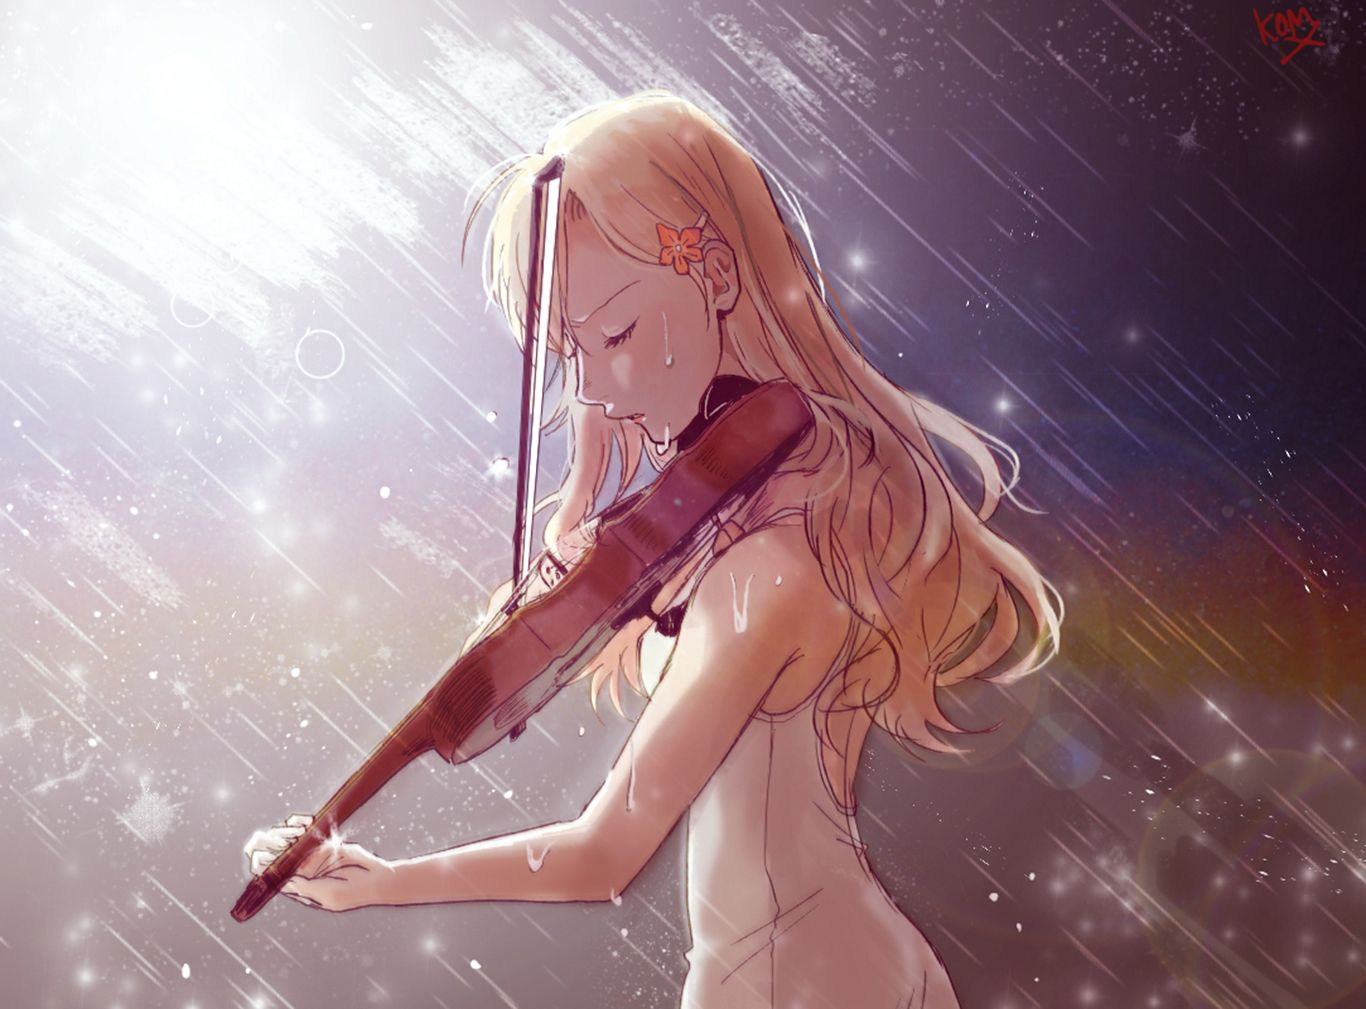 Anime Girl Kaori Miyazono Cry In Rain Wallpaper